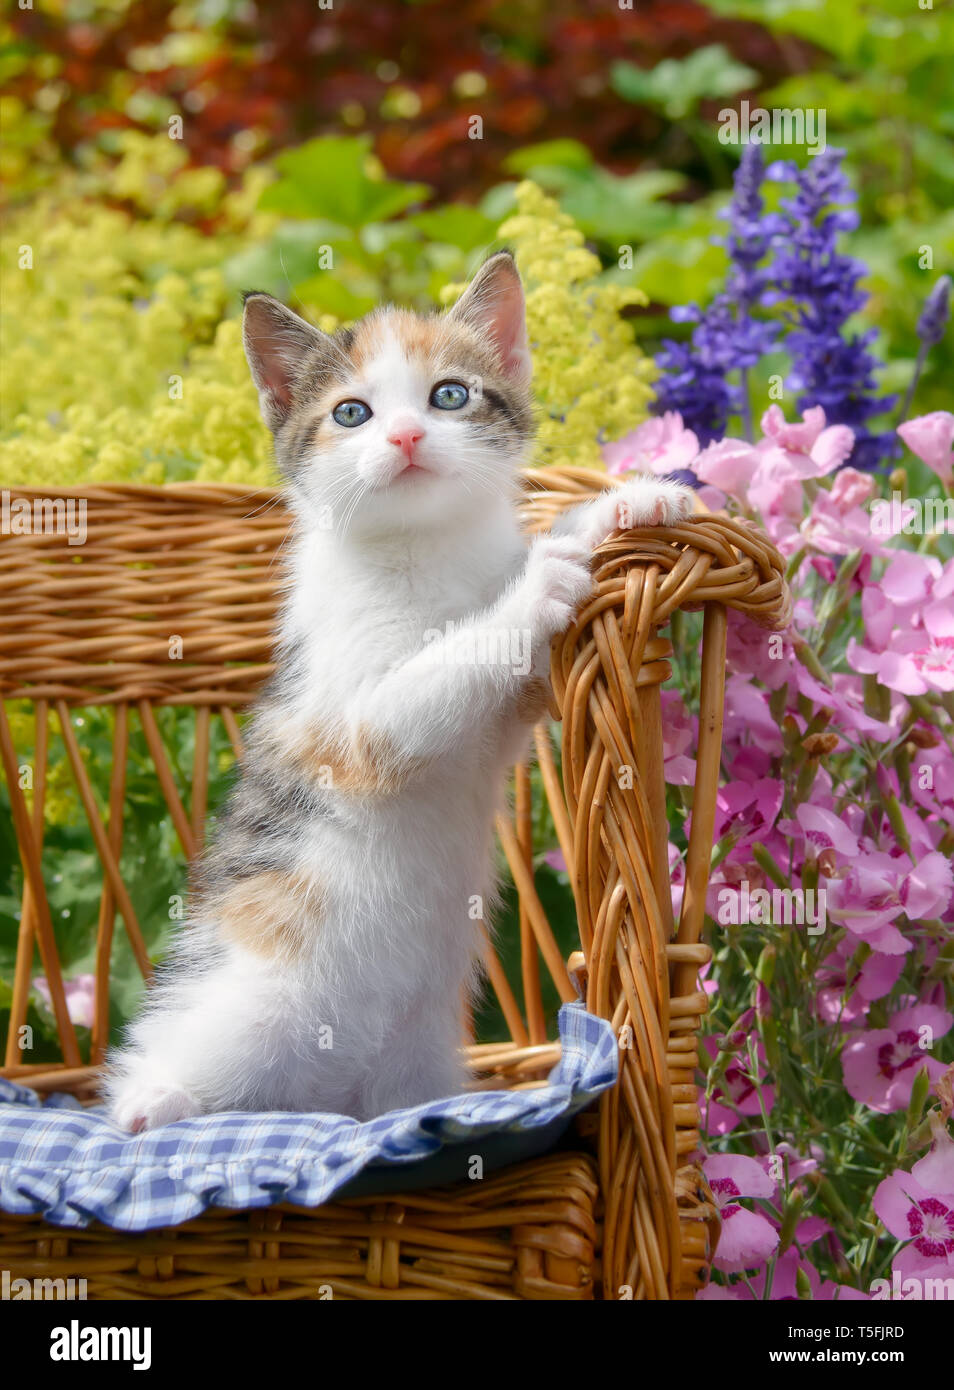 Beautiful Baby Kitten High Resolution Stock Photography And Images Alamy